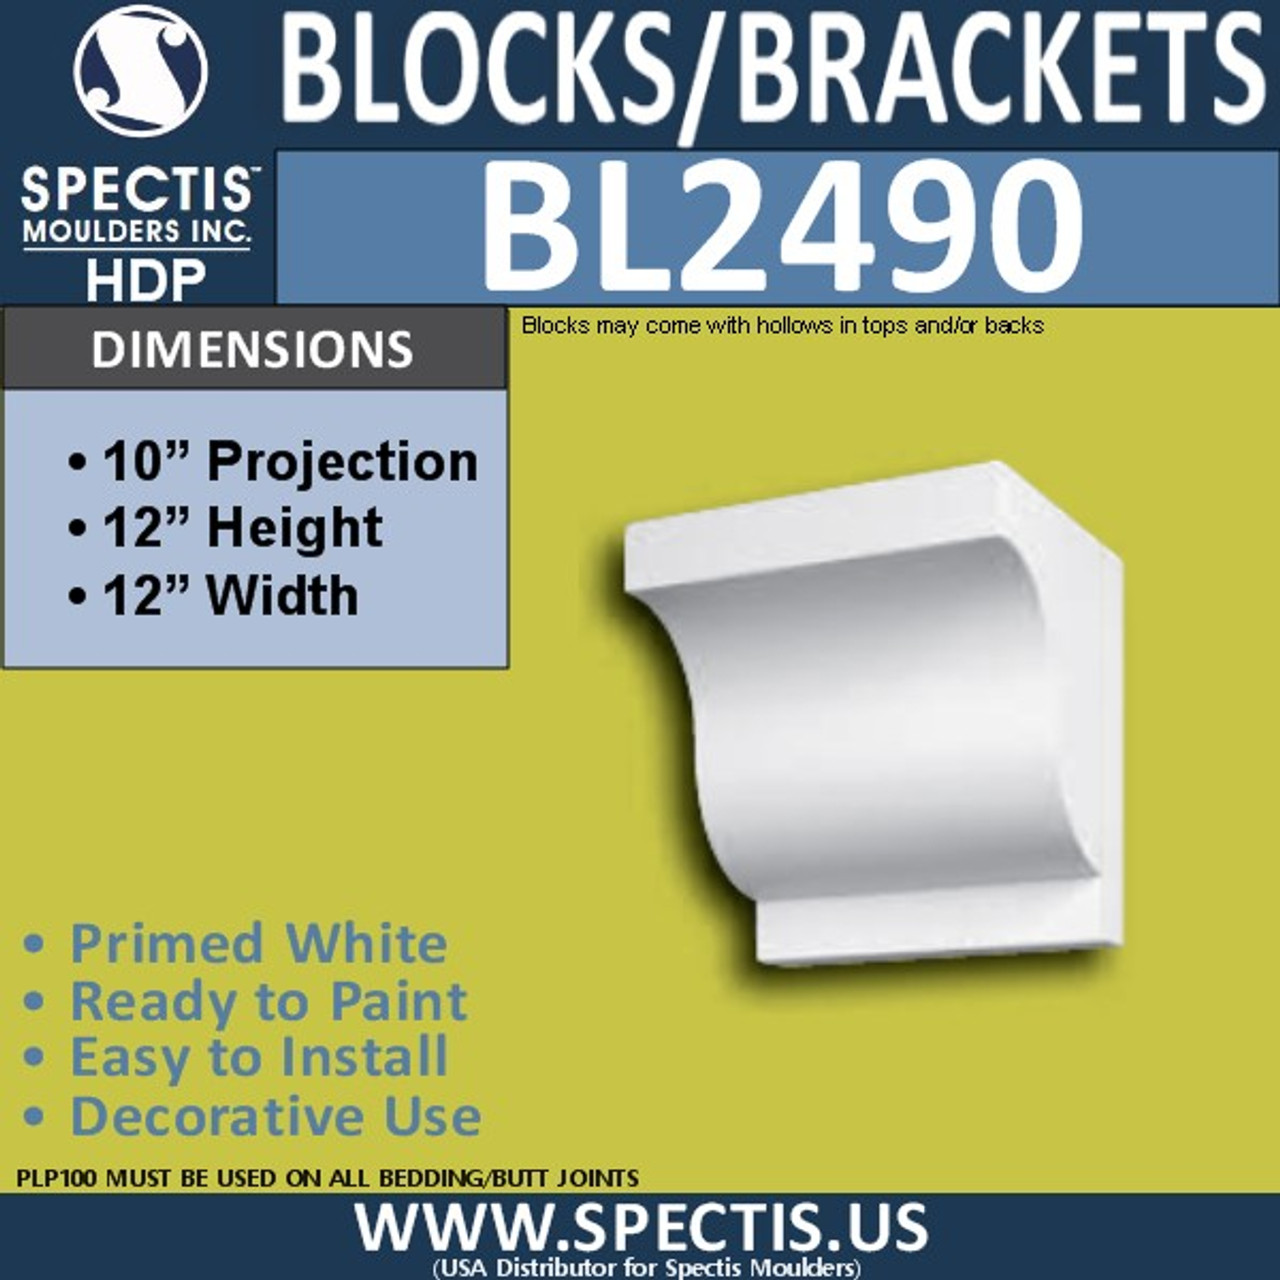 "BL2490 Eave Block or Bracket 12""W x 12""H x 10"" P"